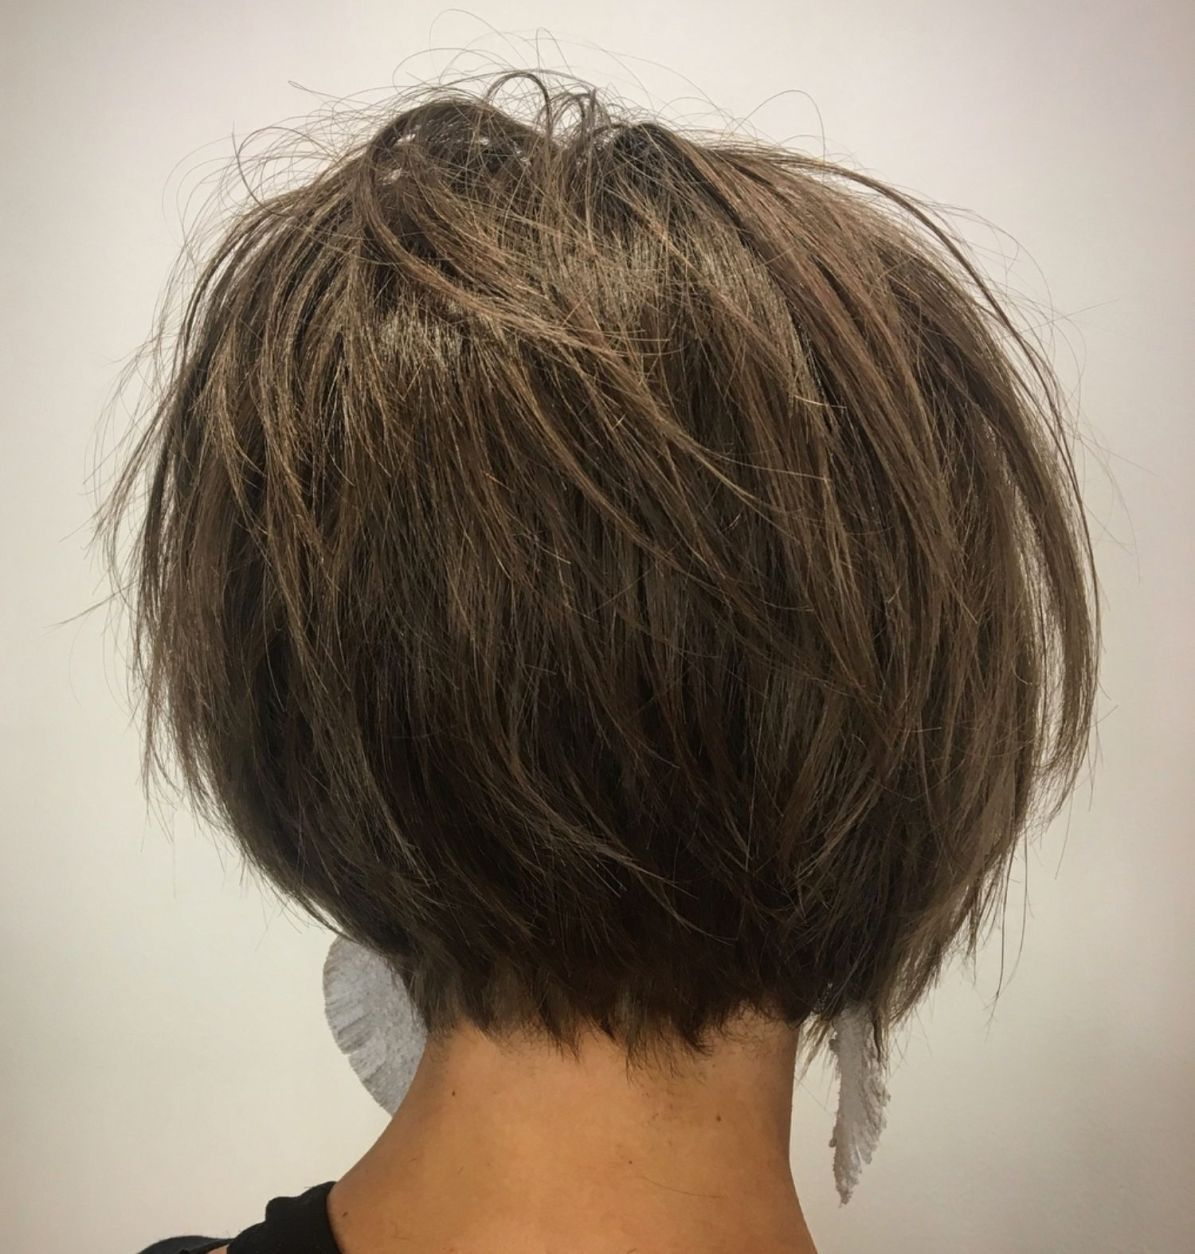 60 Classy Short Haircuts And Hairstyles For Thick Hair Hair Styles Thick Hair Styles Short Hairstyles For Thick Hair